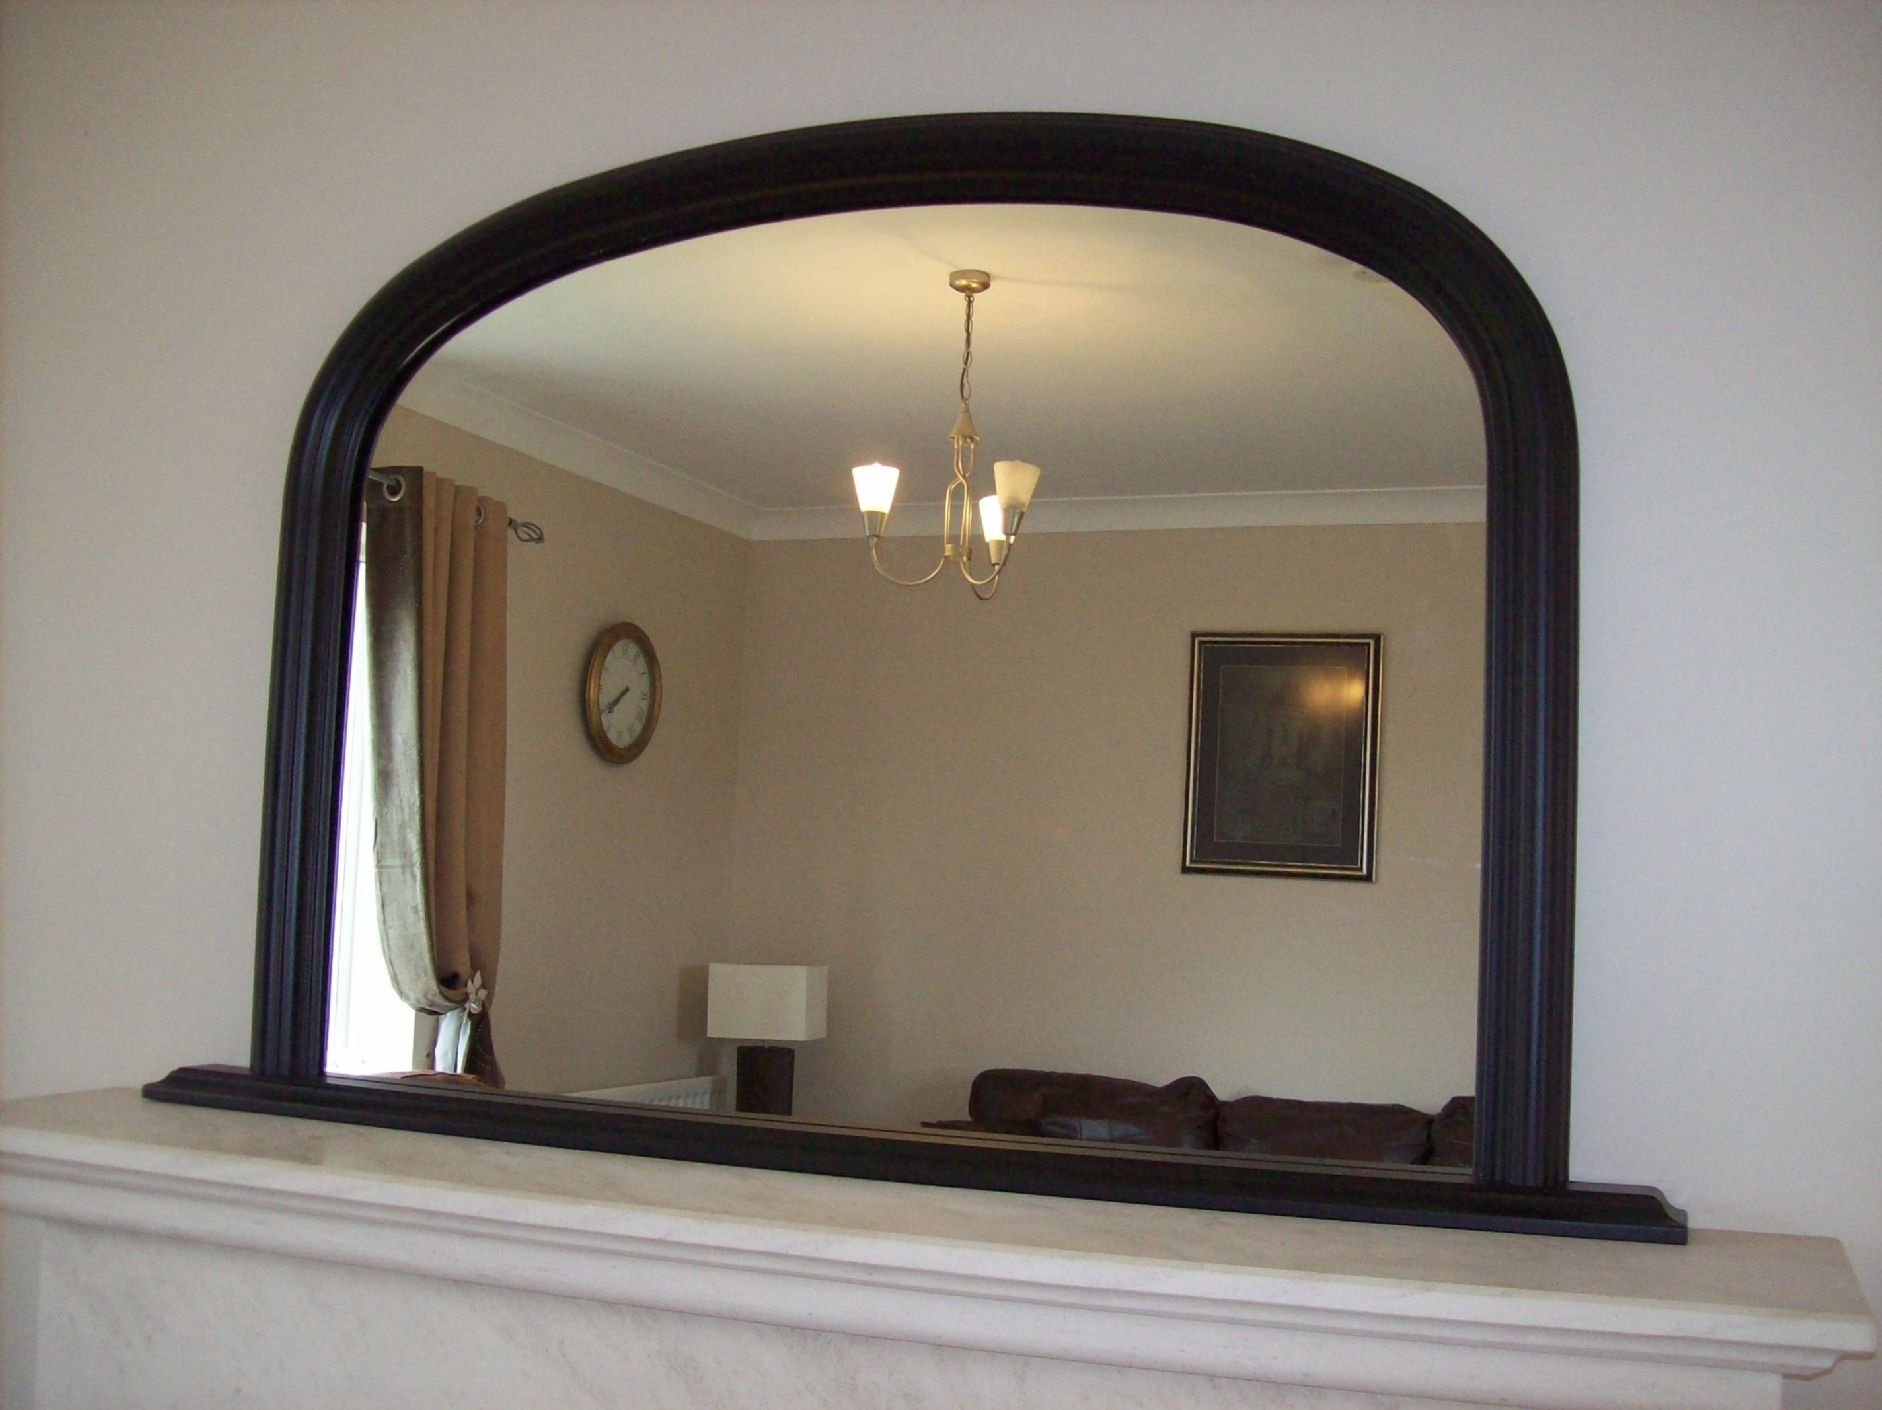 Arched Overmantle Mirror Within Over Mantel Mirror (Image 2 of 15)